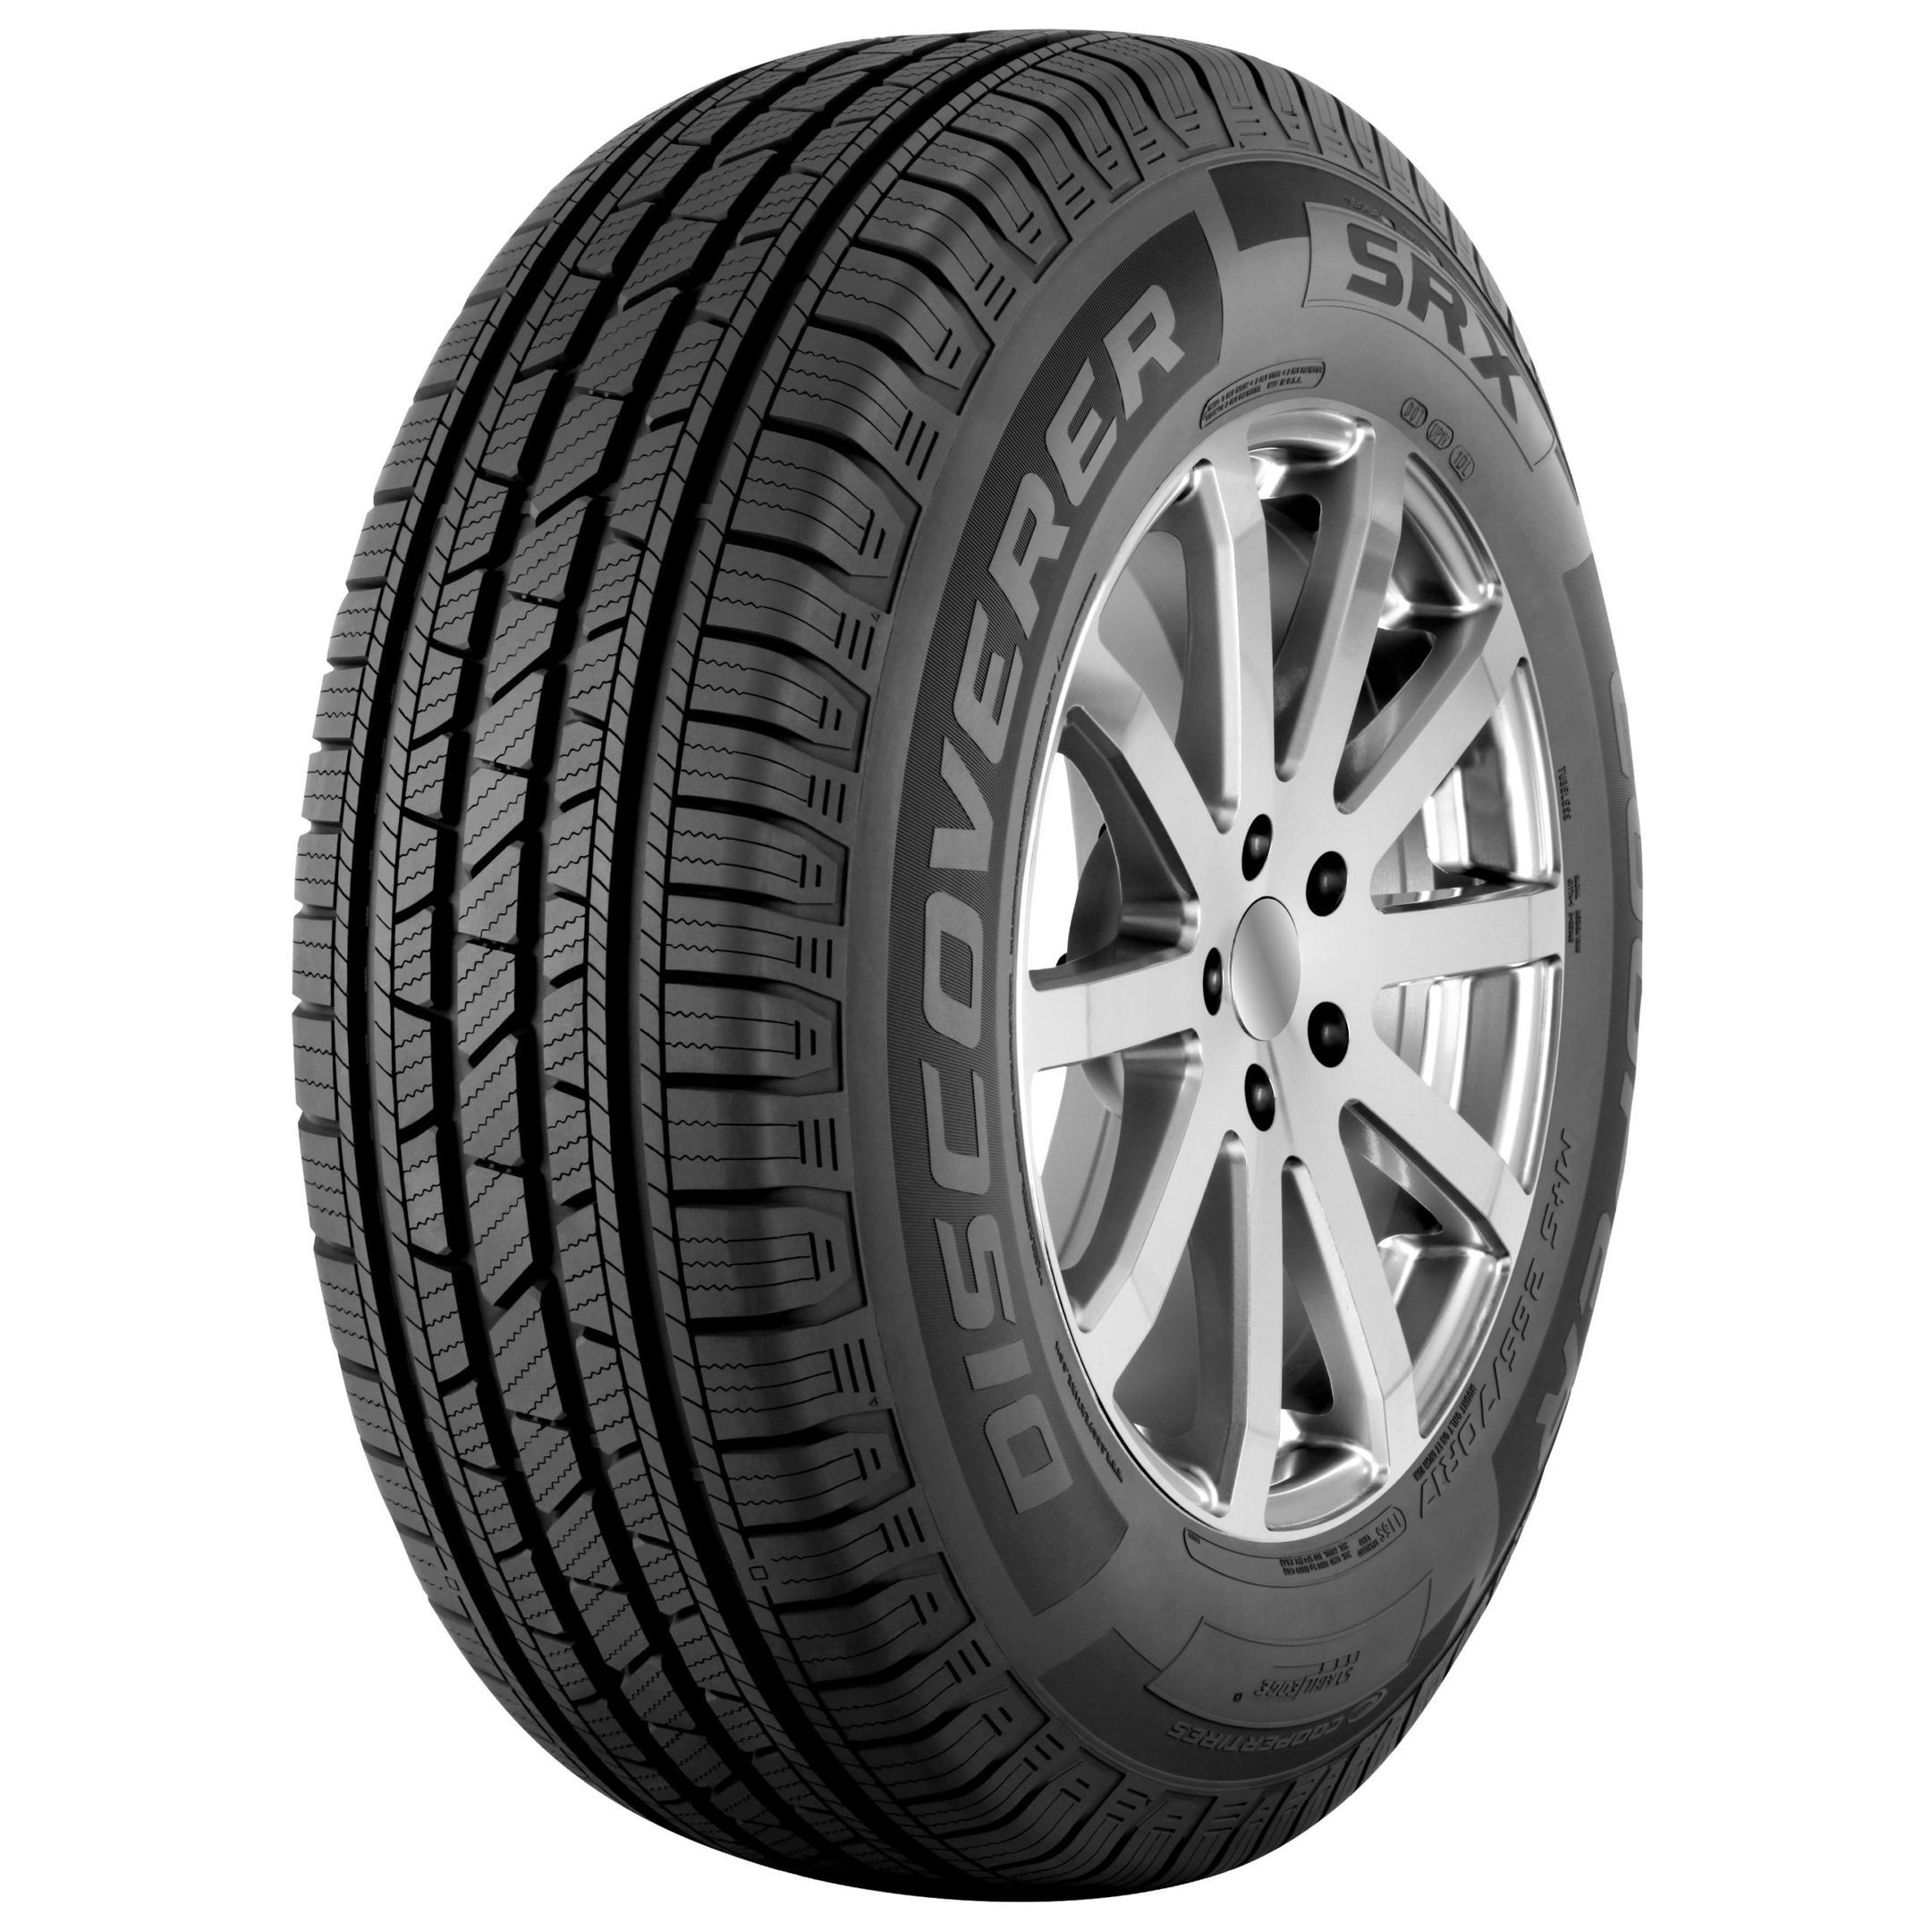 COOPER DISCOVERER SRX All-Season 235/65R17 104T Tire